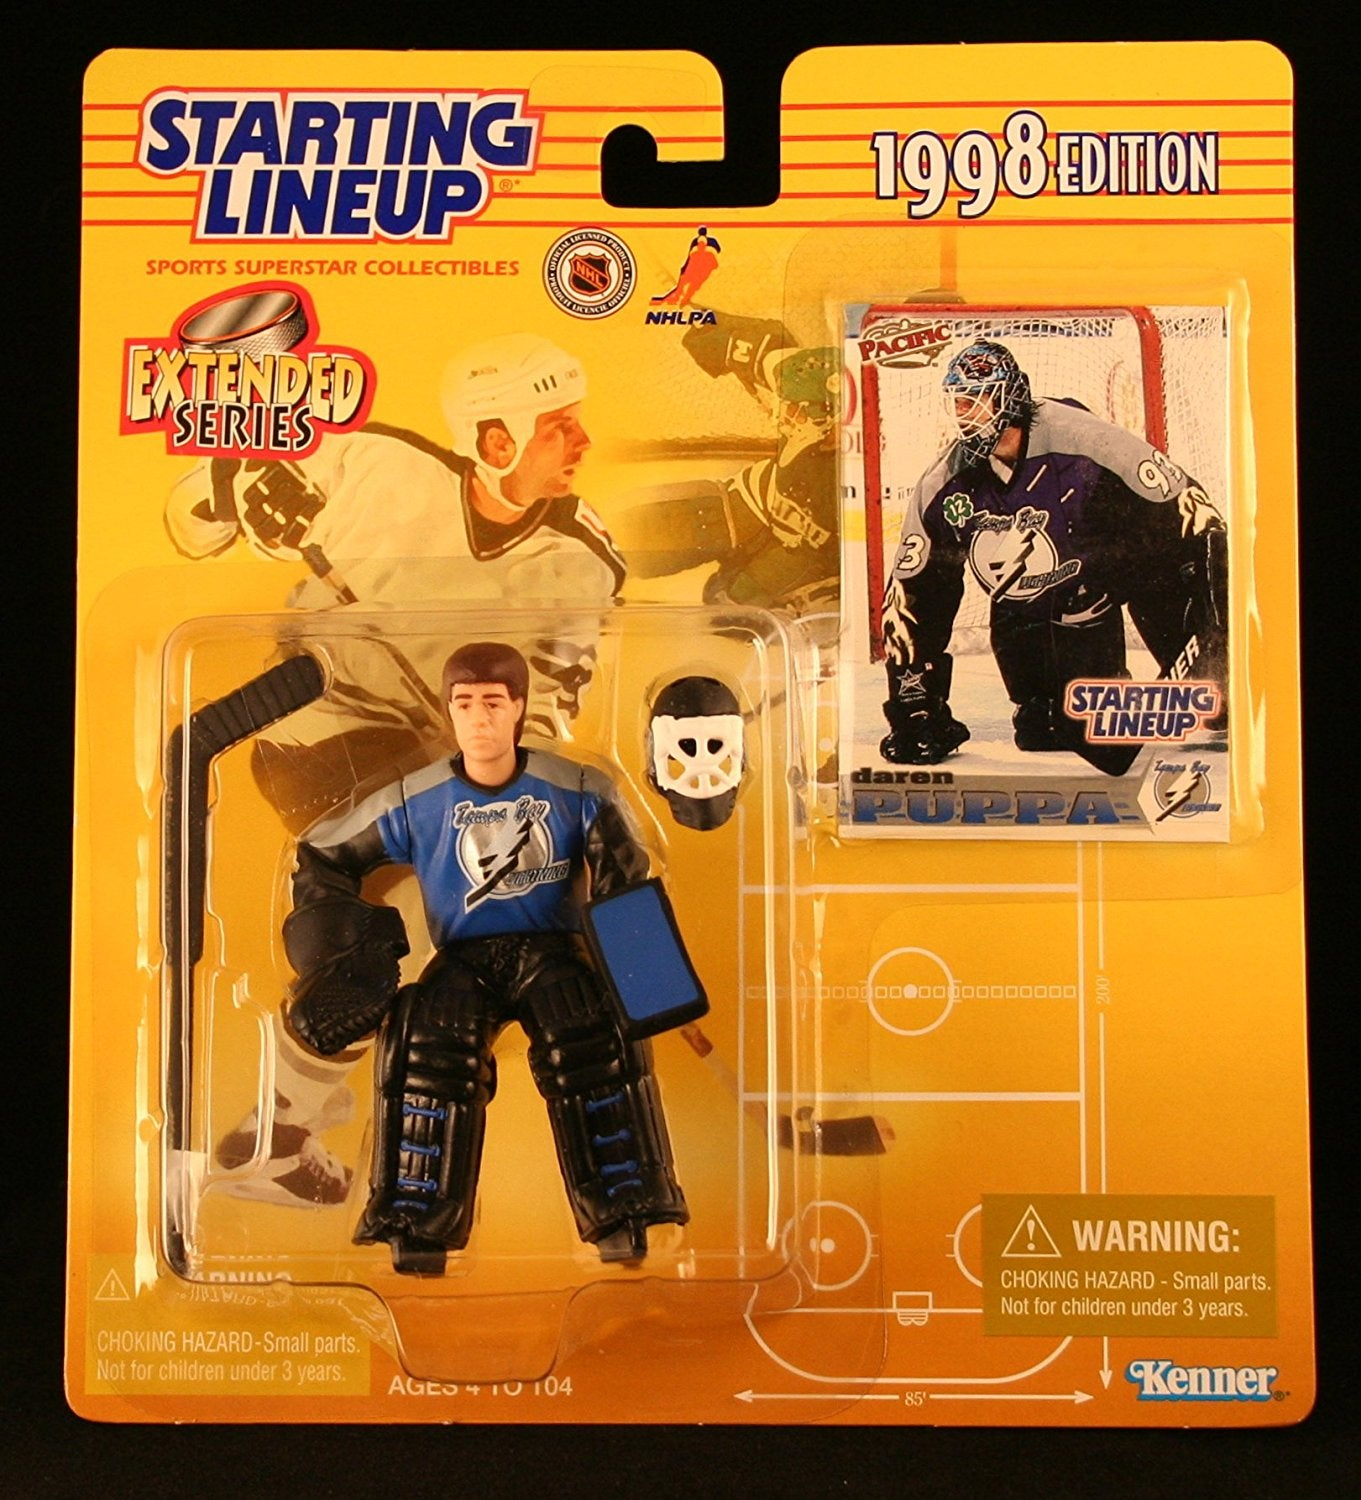 DAREN PUPPA / TAMPA BAY LIGHTNING 1998 Extended Series NHL Starting Lineup Action Figure & Exclusive Pacific NHL Collector Trading Card